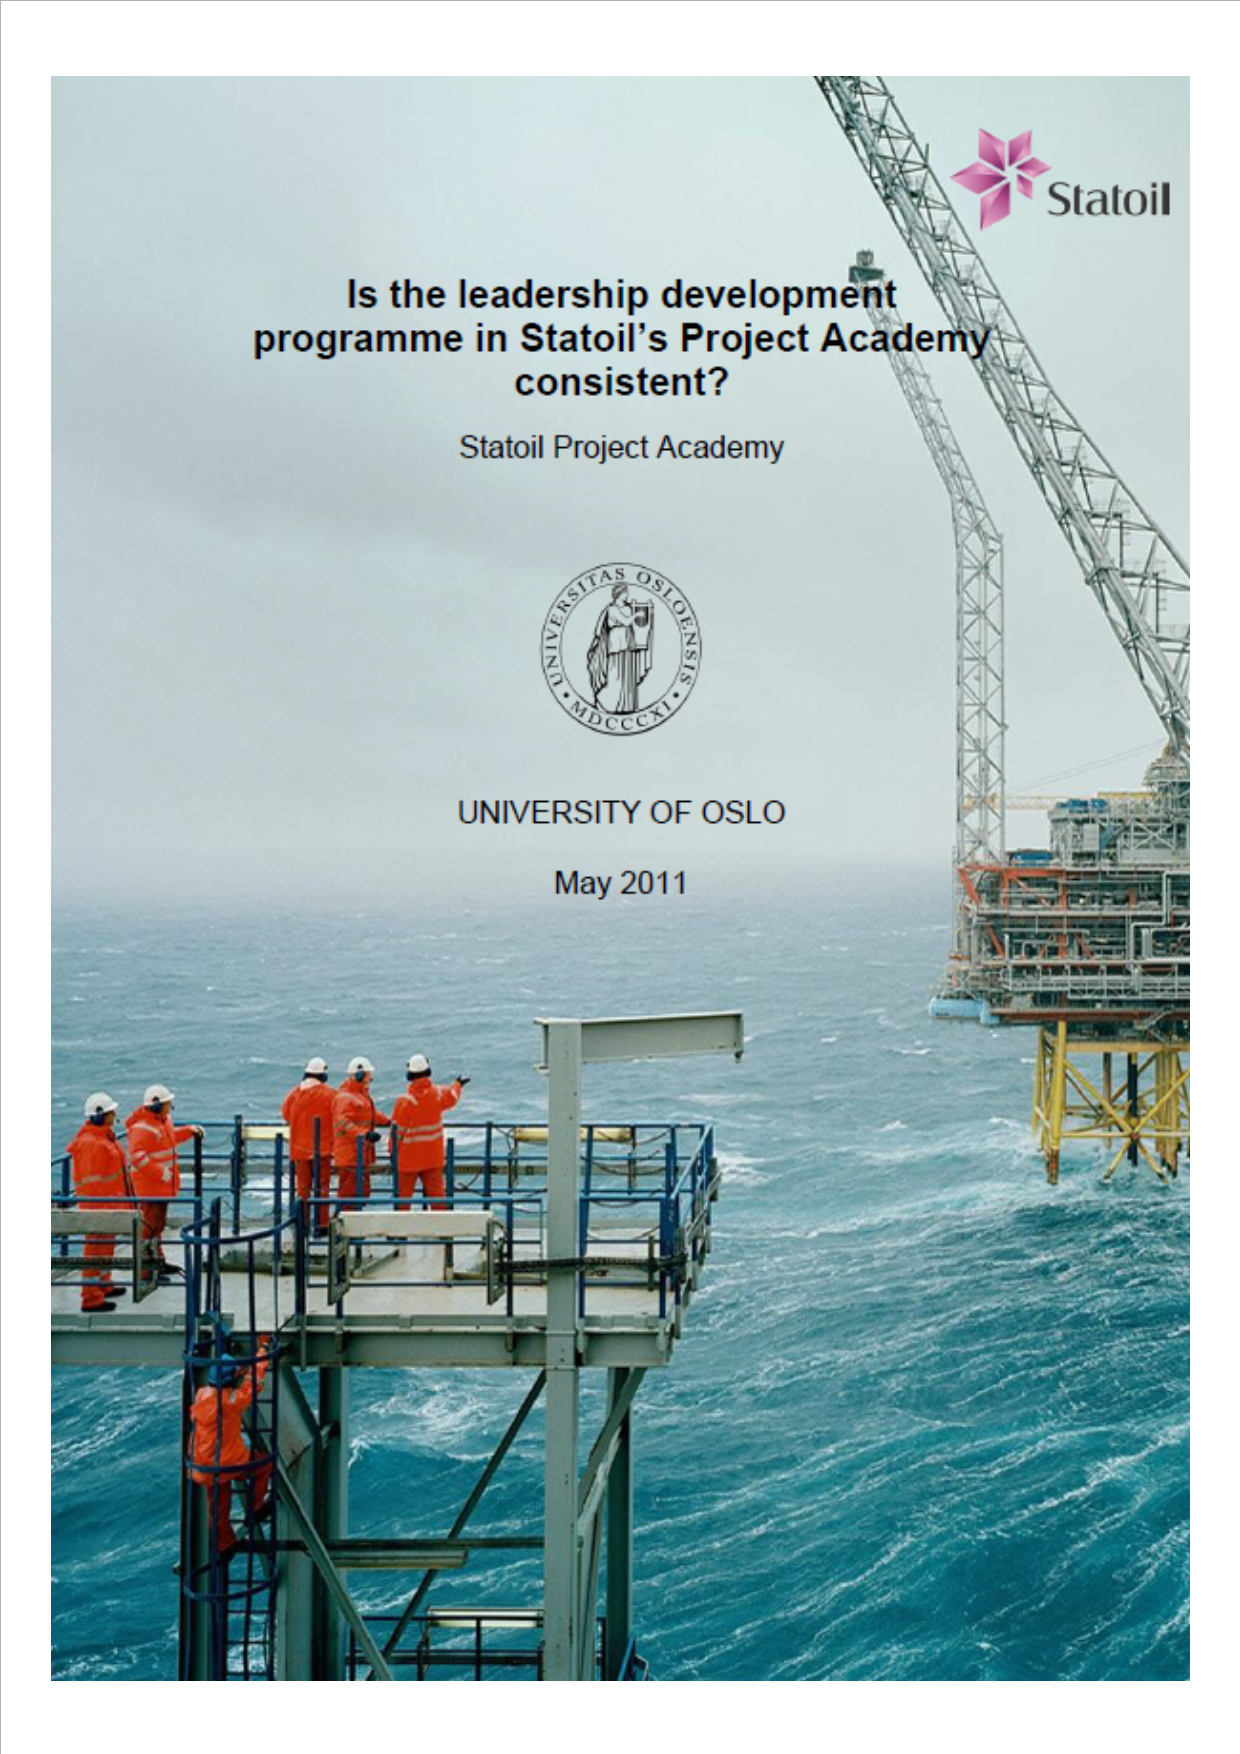 Statoil: The leadership development programme